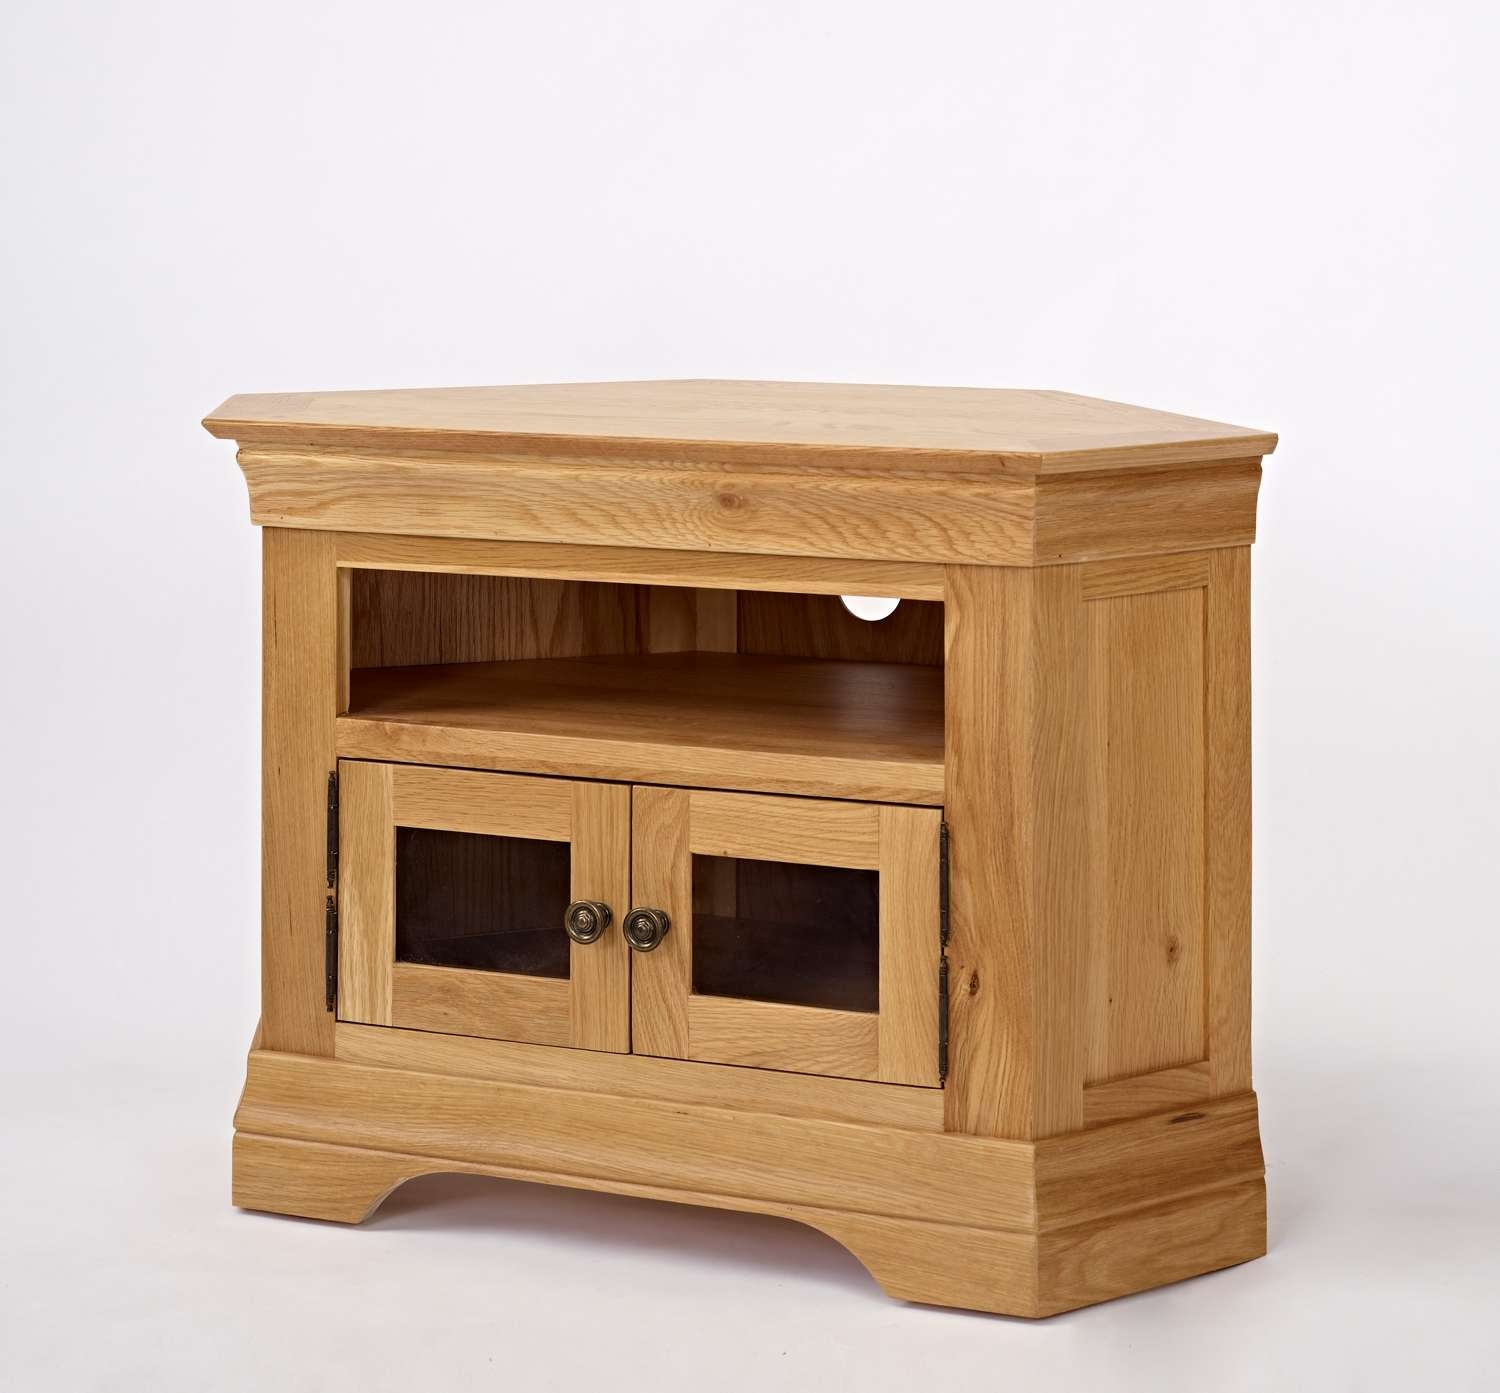 French Modern Oak Corner Tv Unit | Hampshire Furniture For Modern Oak Tv Stands (View 13 of 15)